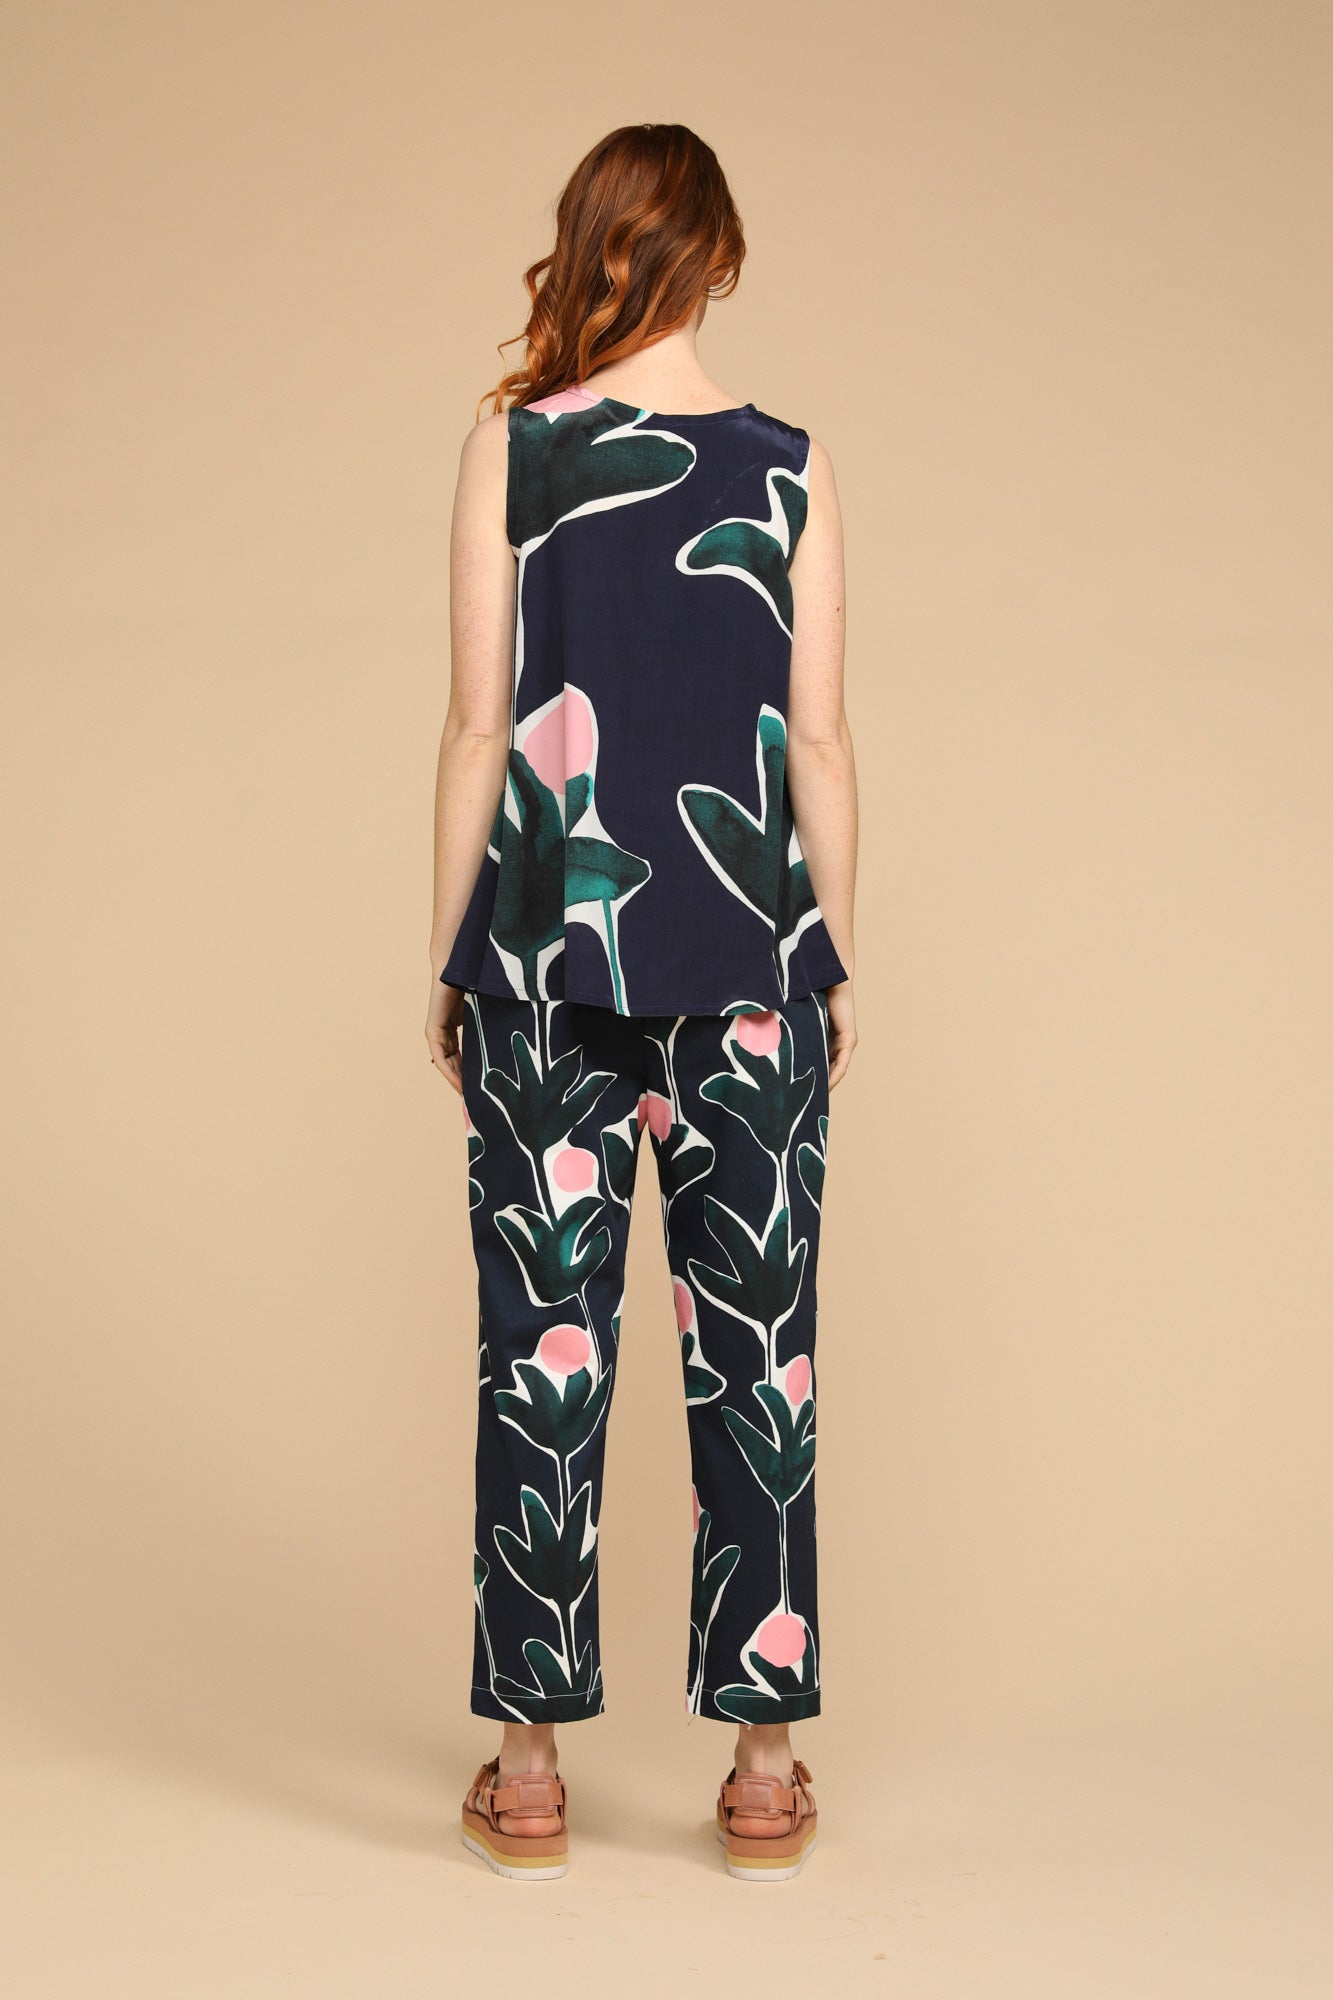 Formation Pants by Variety Hour in Protea Print, Designed by Cassie Byrnes